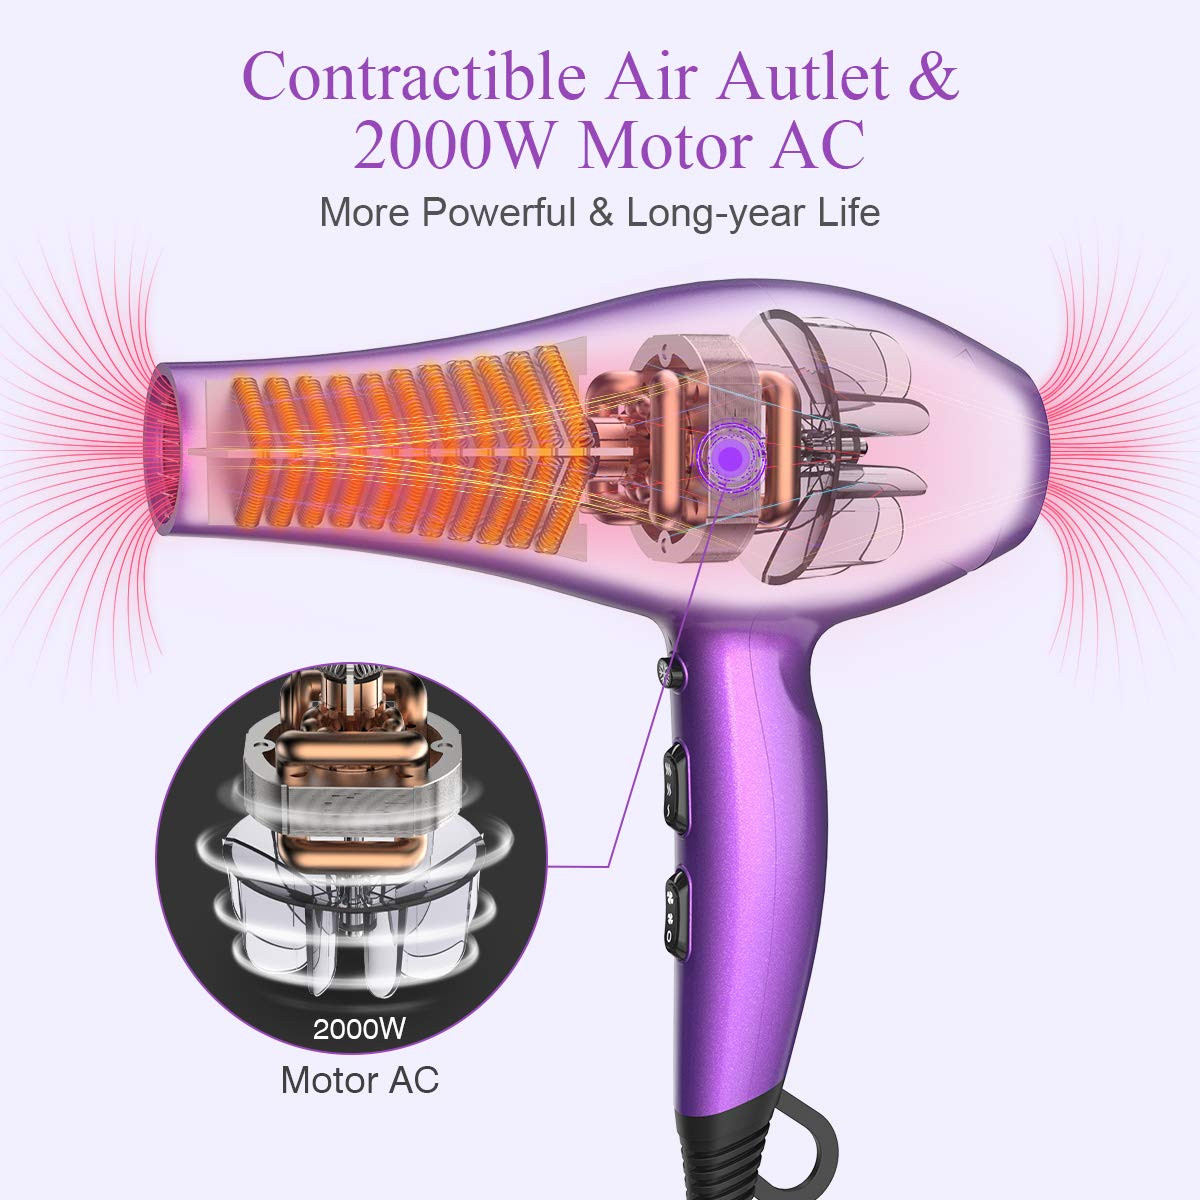 Electric-Hair-Dryer-Blow-Dryer-Hair-Ovonni-AC-HAIR-DRY-Hairdryer-Hairstyling-Tools-Power-Hair-Dryer-for-Hairdressing-Dryer-Fan-4000505463371